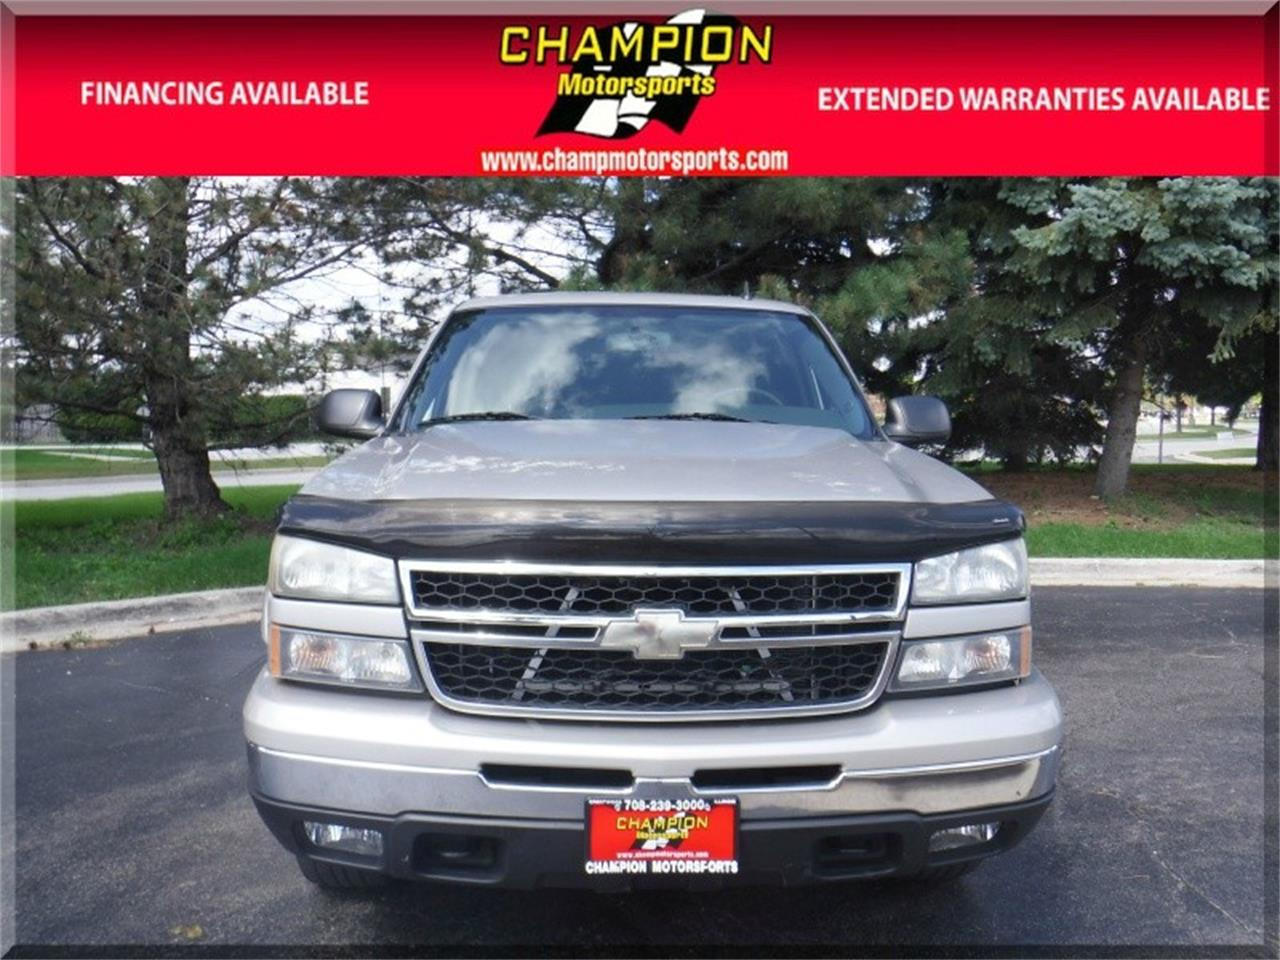 For Sale: 2006 Chevrolet Silverado in Crestwood, Illinois